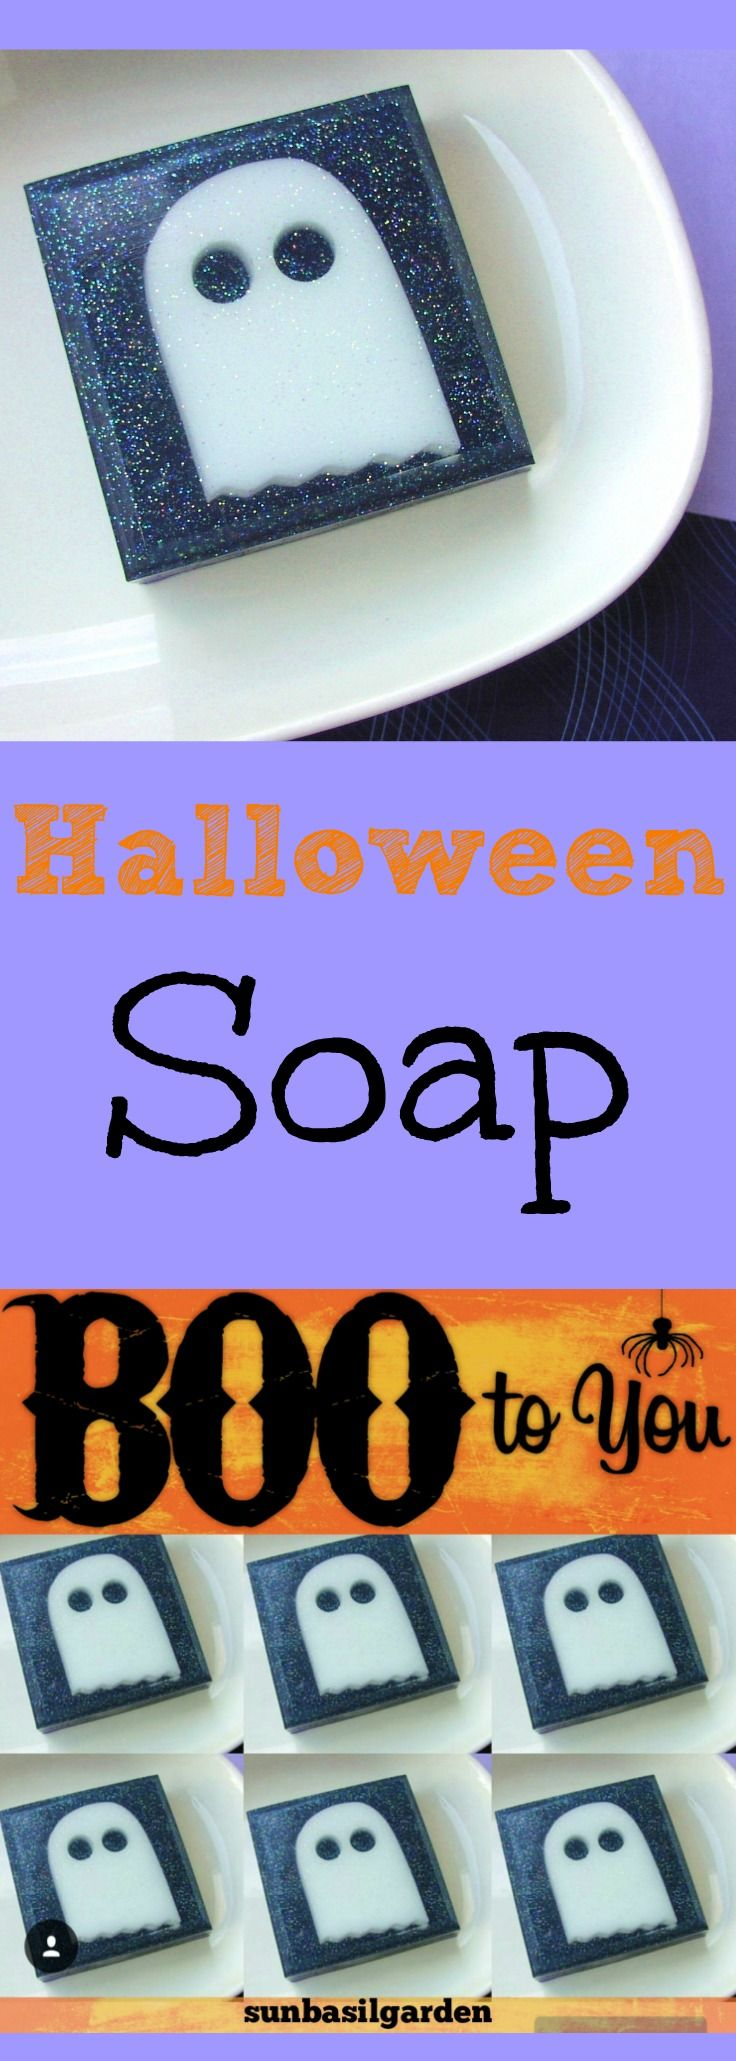 Mr. Boo the soap ghost comes flying into our shop only once a year. We have been making fun soapy fellow for 10 years and counting. Each ghost is cut by hand from soap and popped inside a juicy bar of glycerin. Isn't he so cute? We scent him in a fun bubble gum. He loves to used as Halloween party favors.